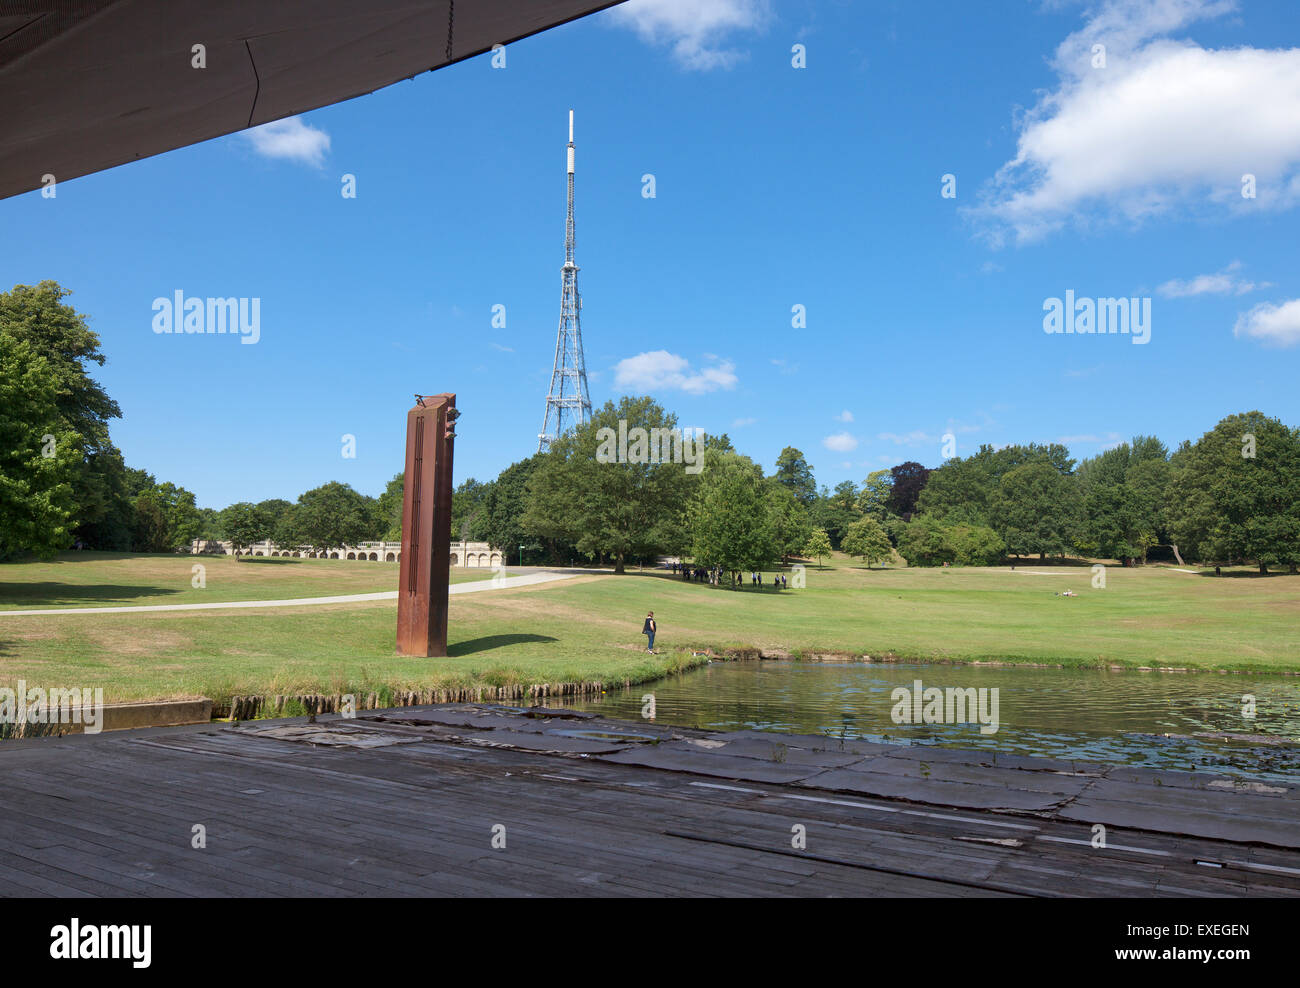 Crystal Palace concert platform. Stock Photo